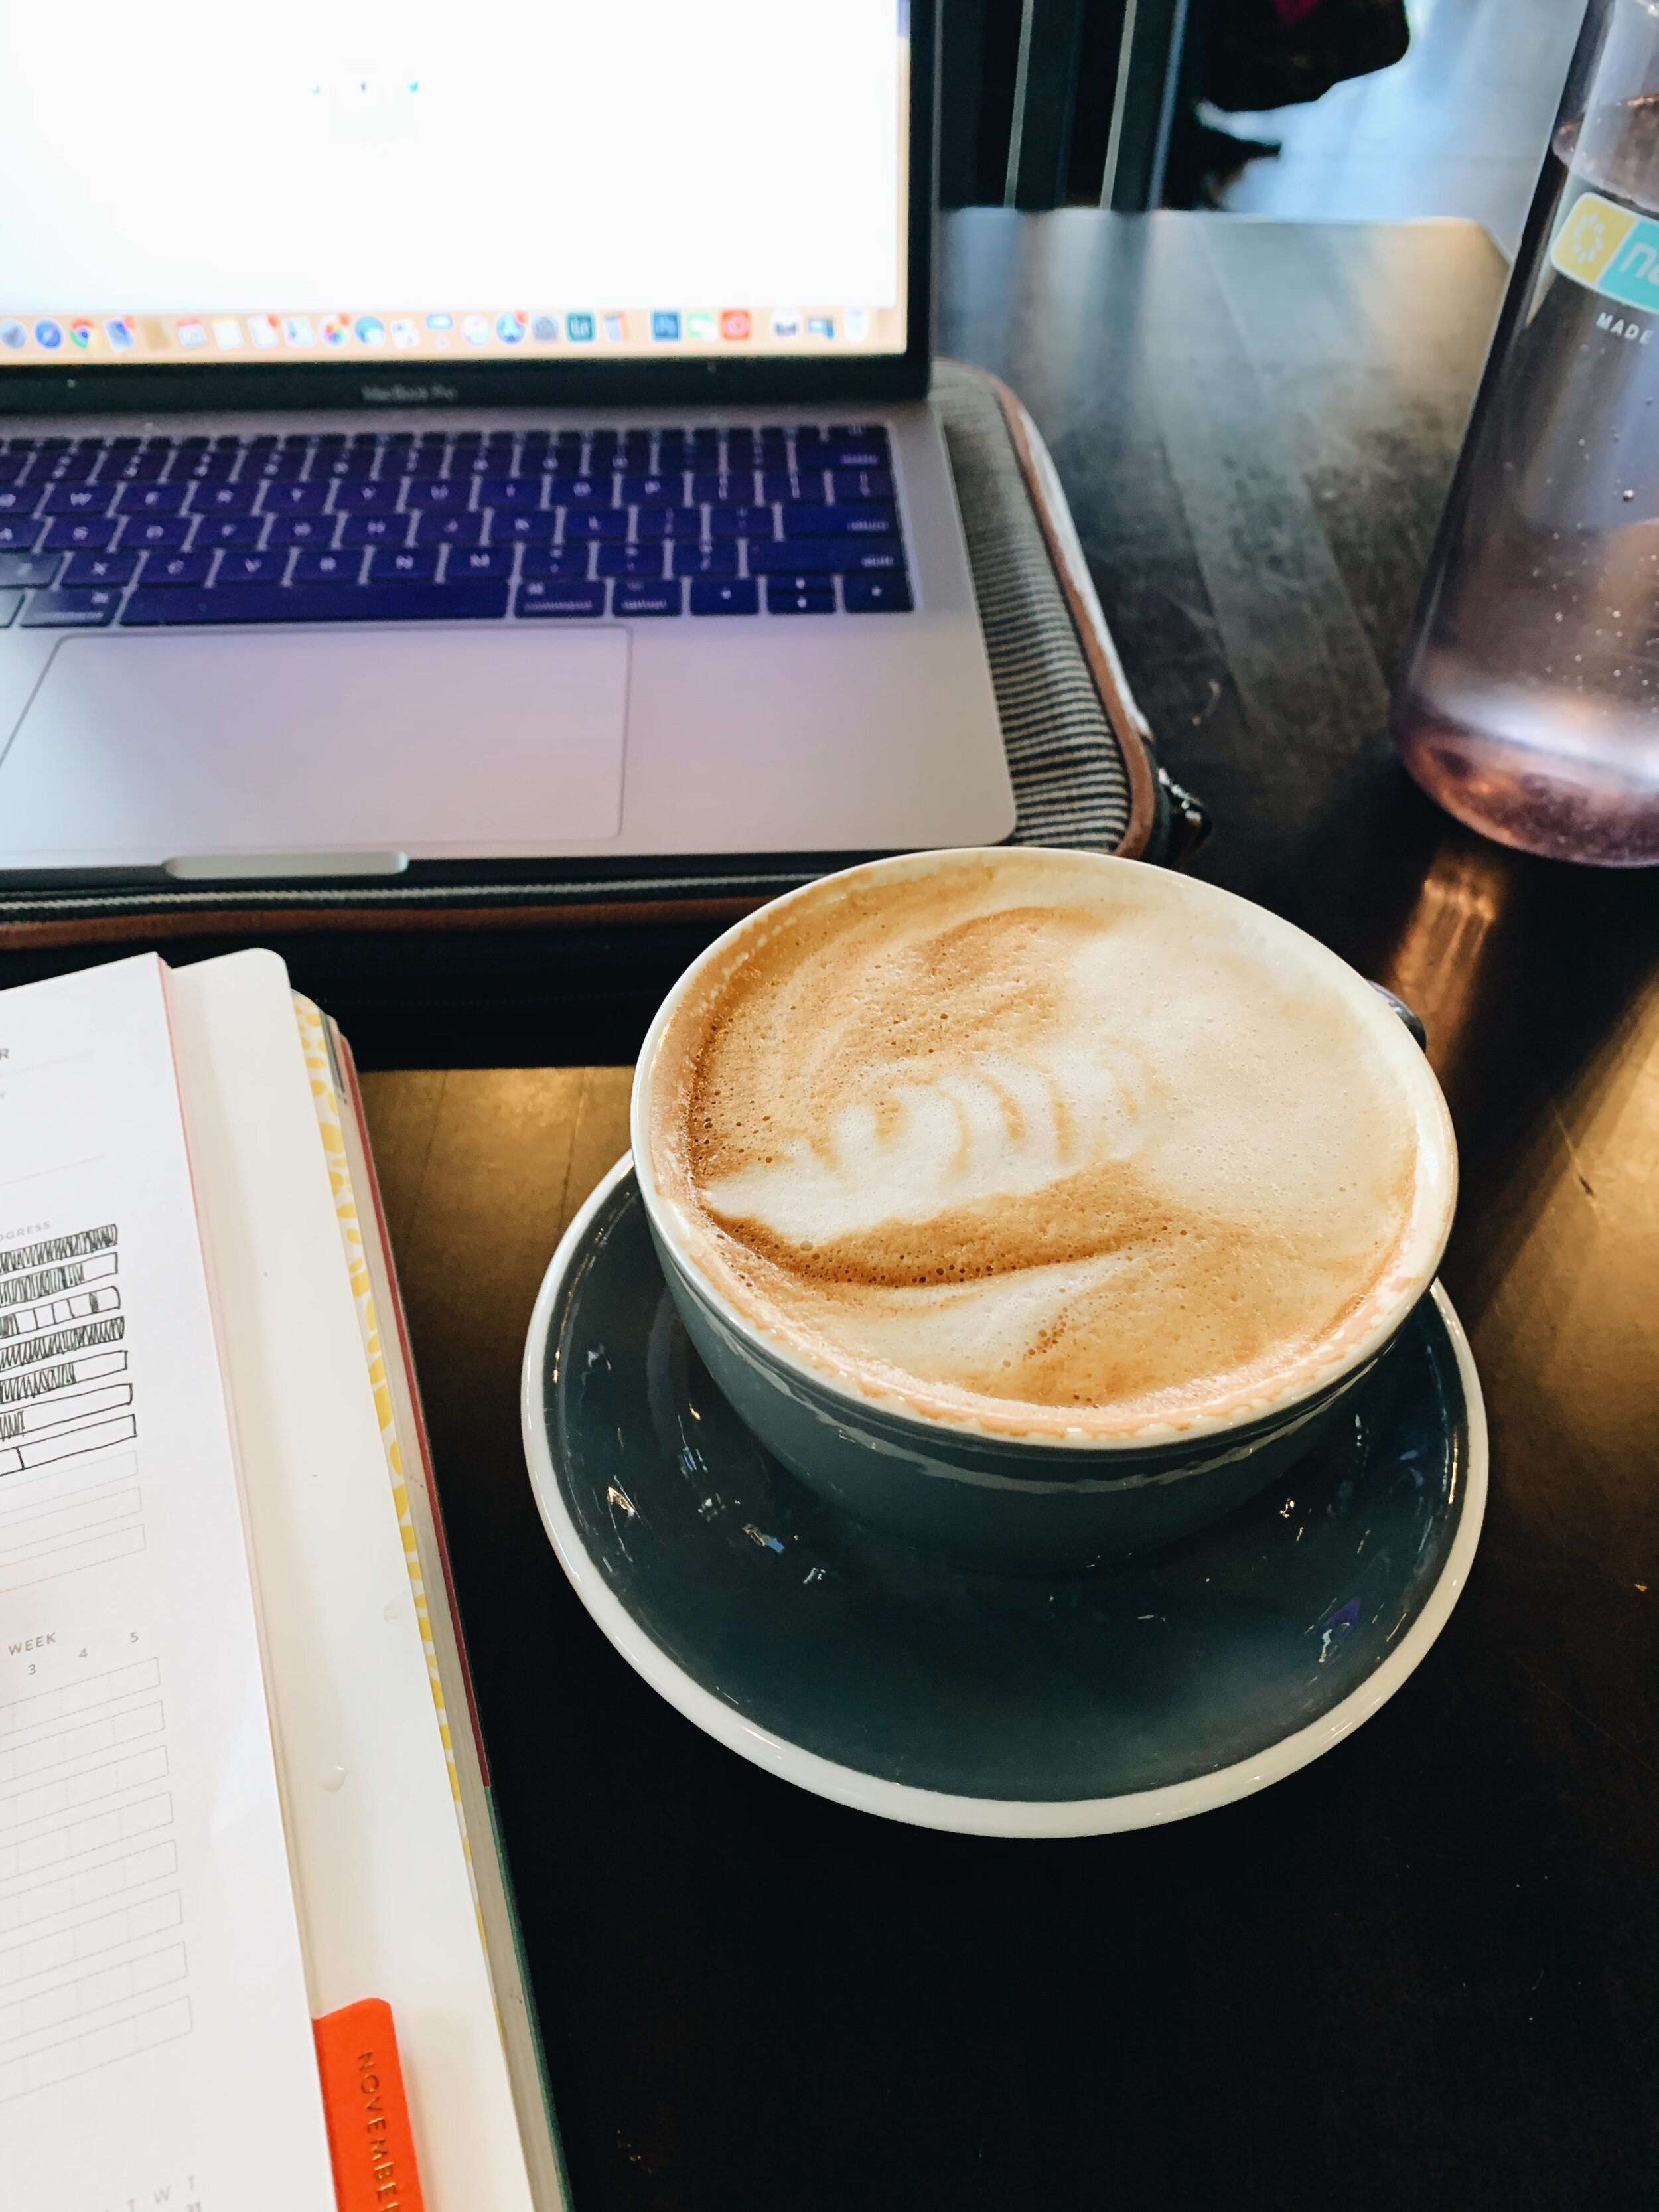 Dakota and I spent a few days in Colorado for a wedding and to visit family. While I was there I popped into a few lovely coffee shops to work on a few projects I'm excited to have in progress!